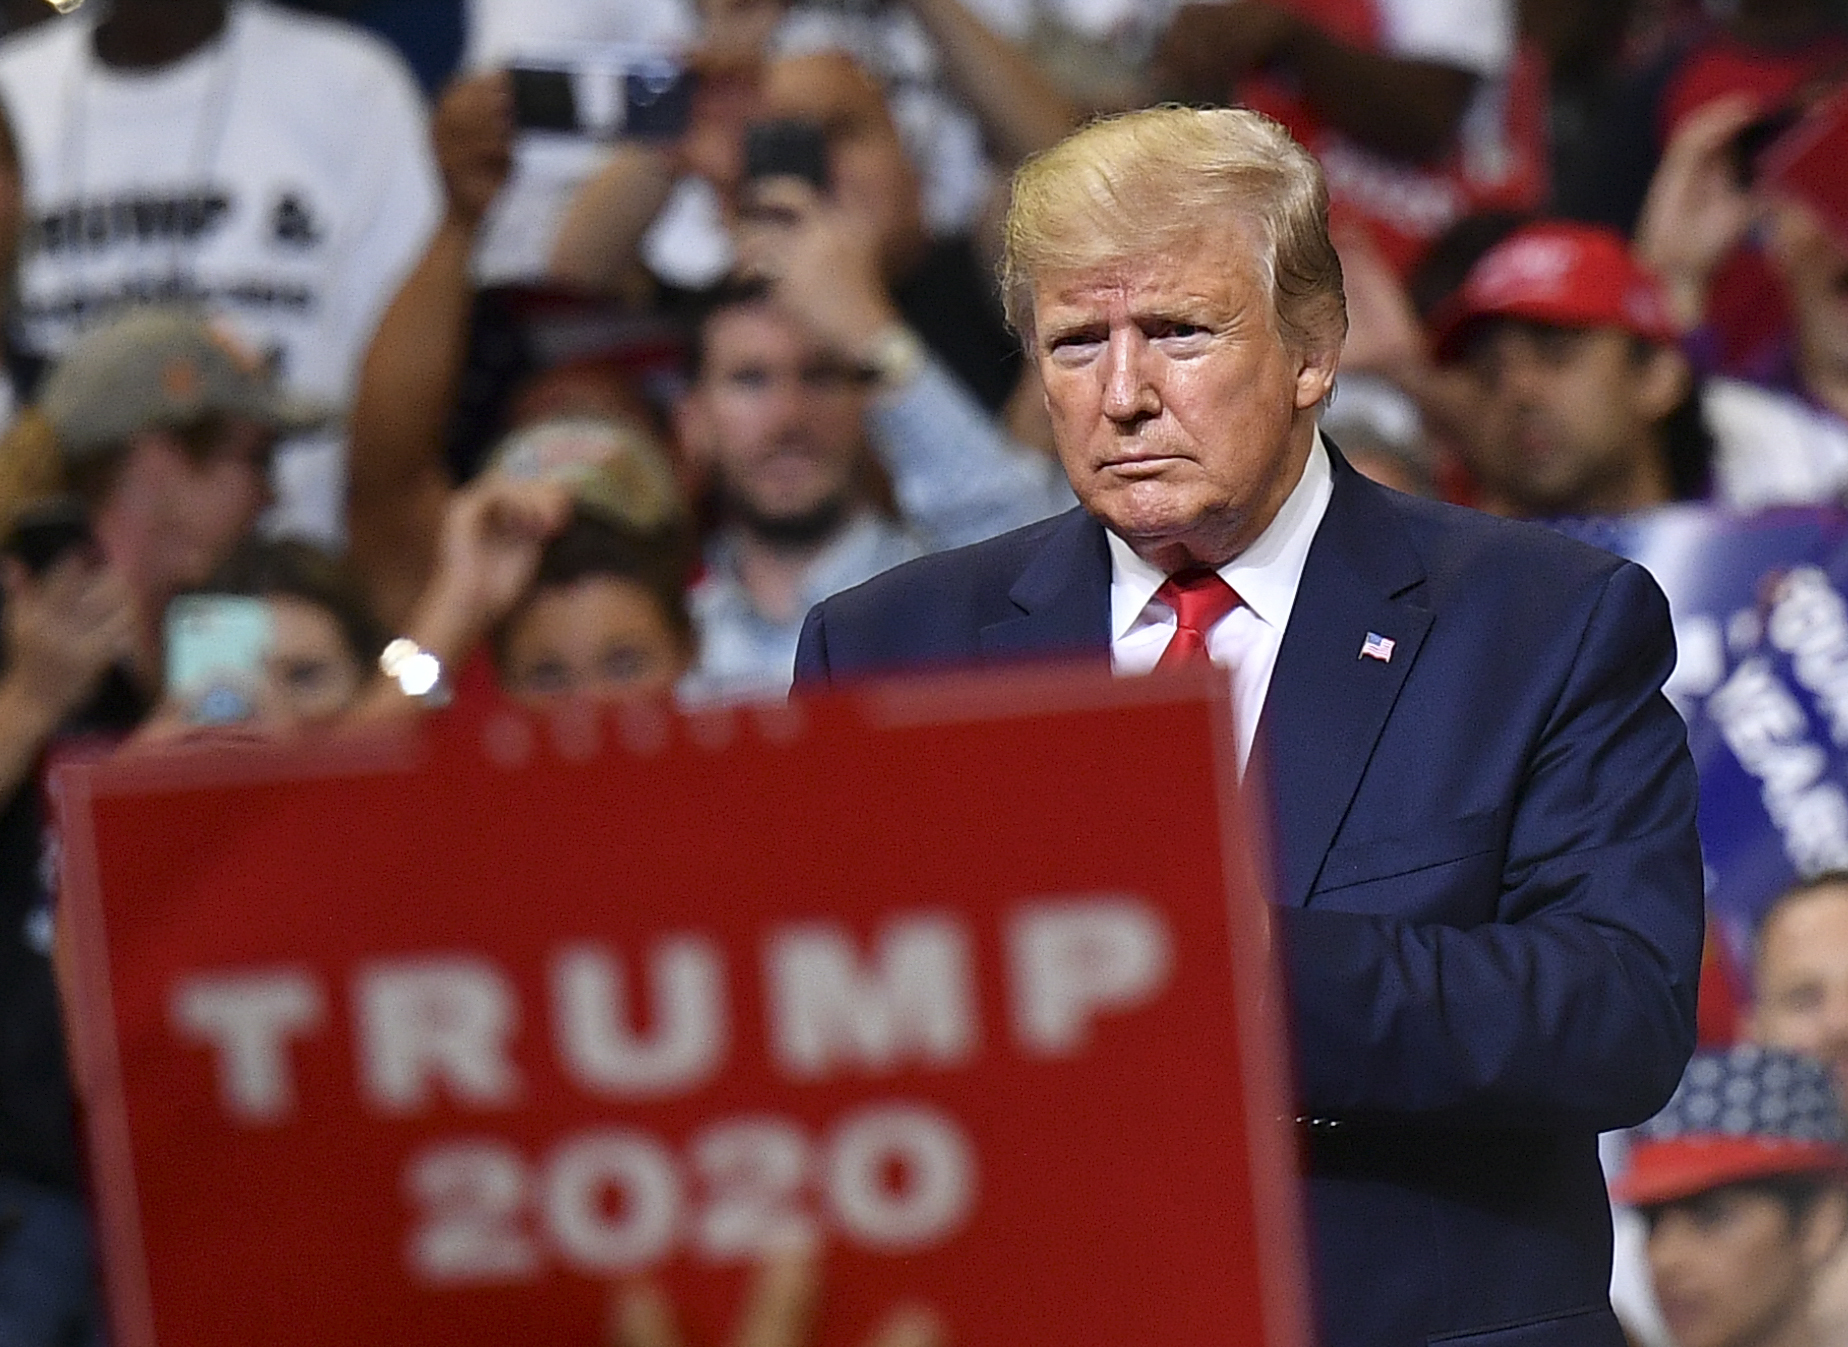 Trump files lawsuit against California election law that